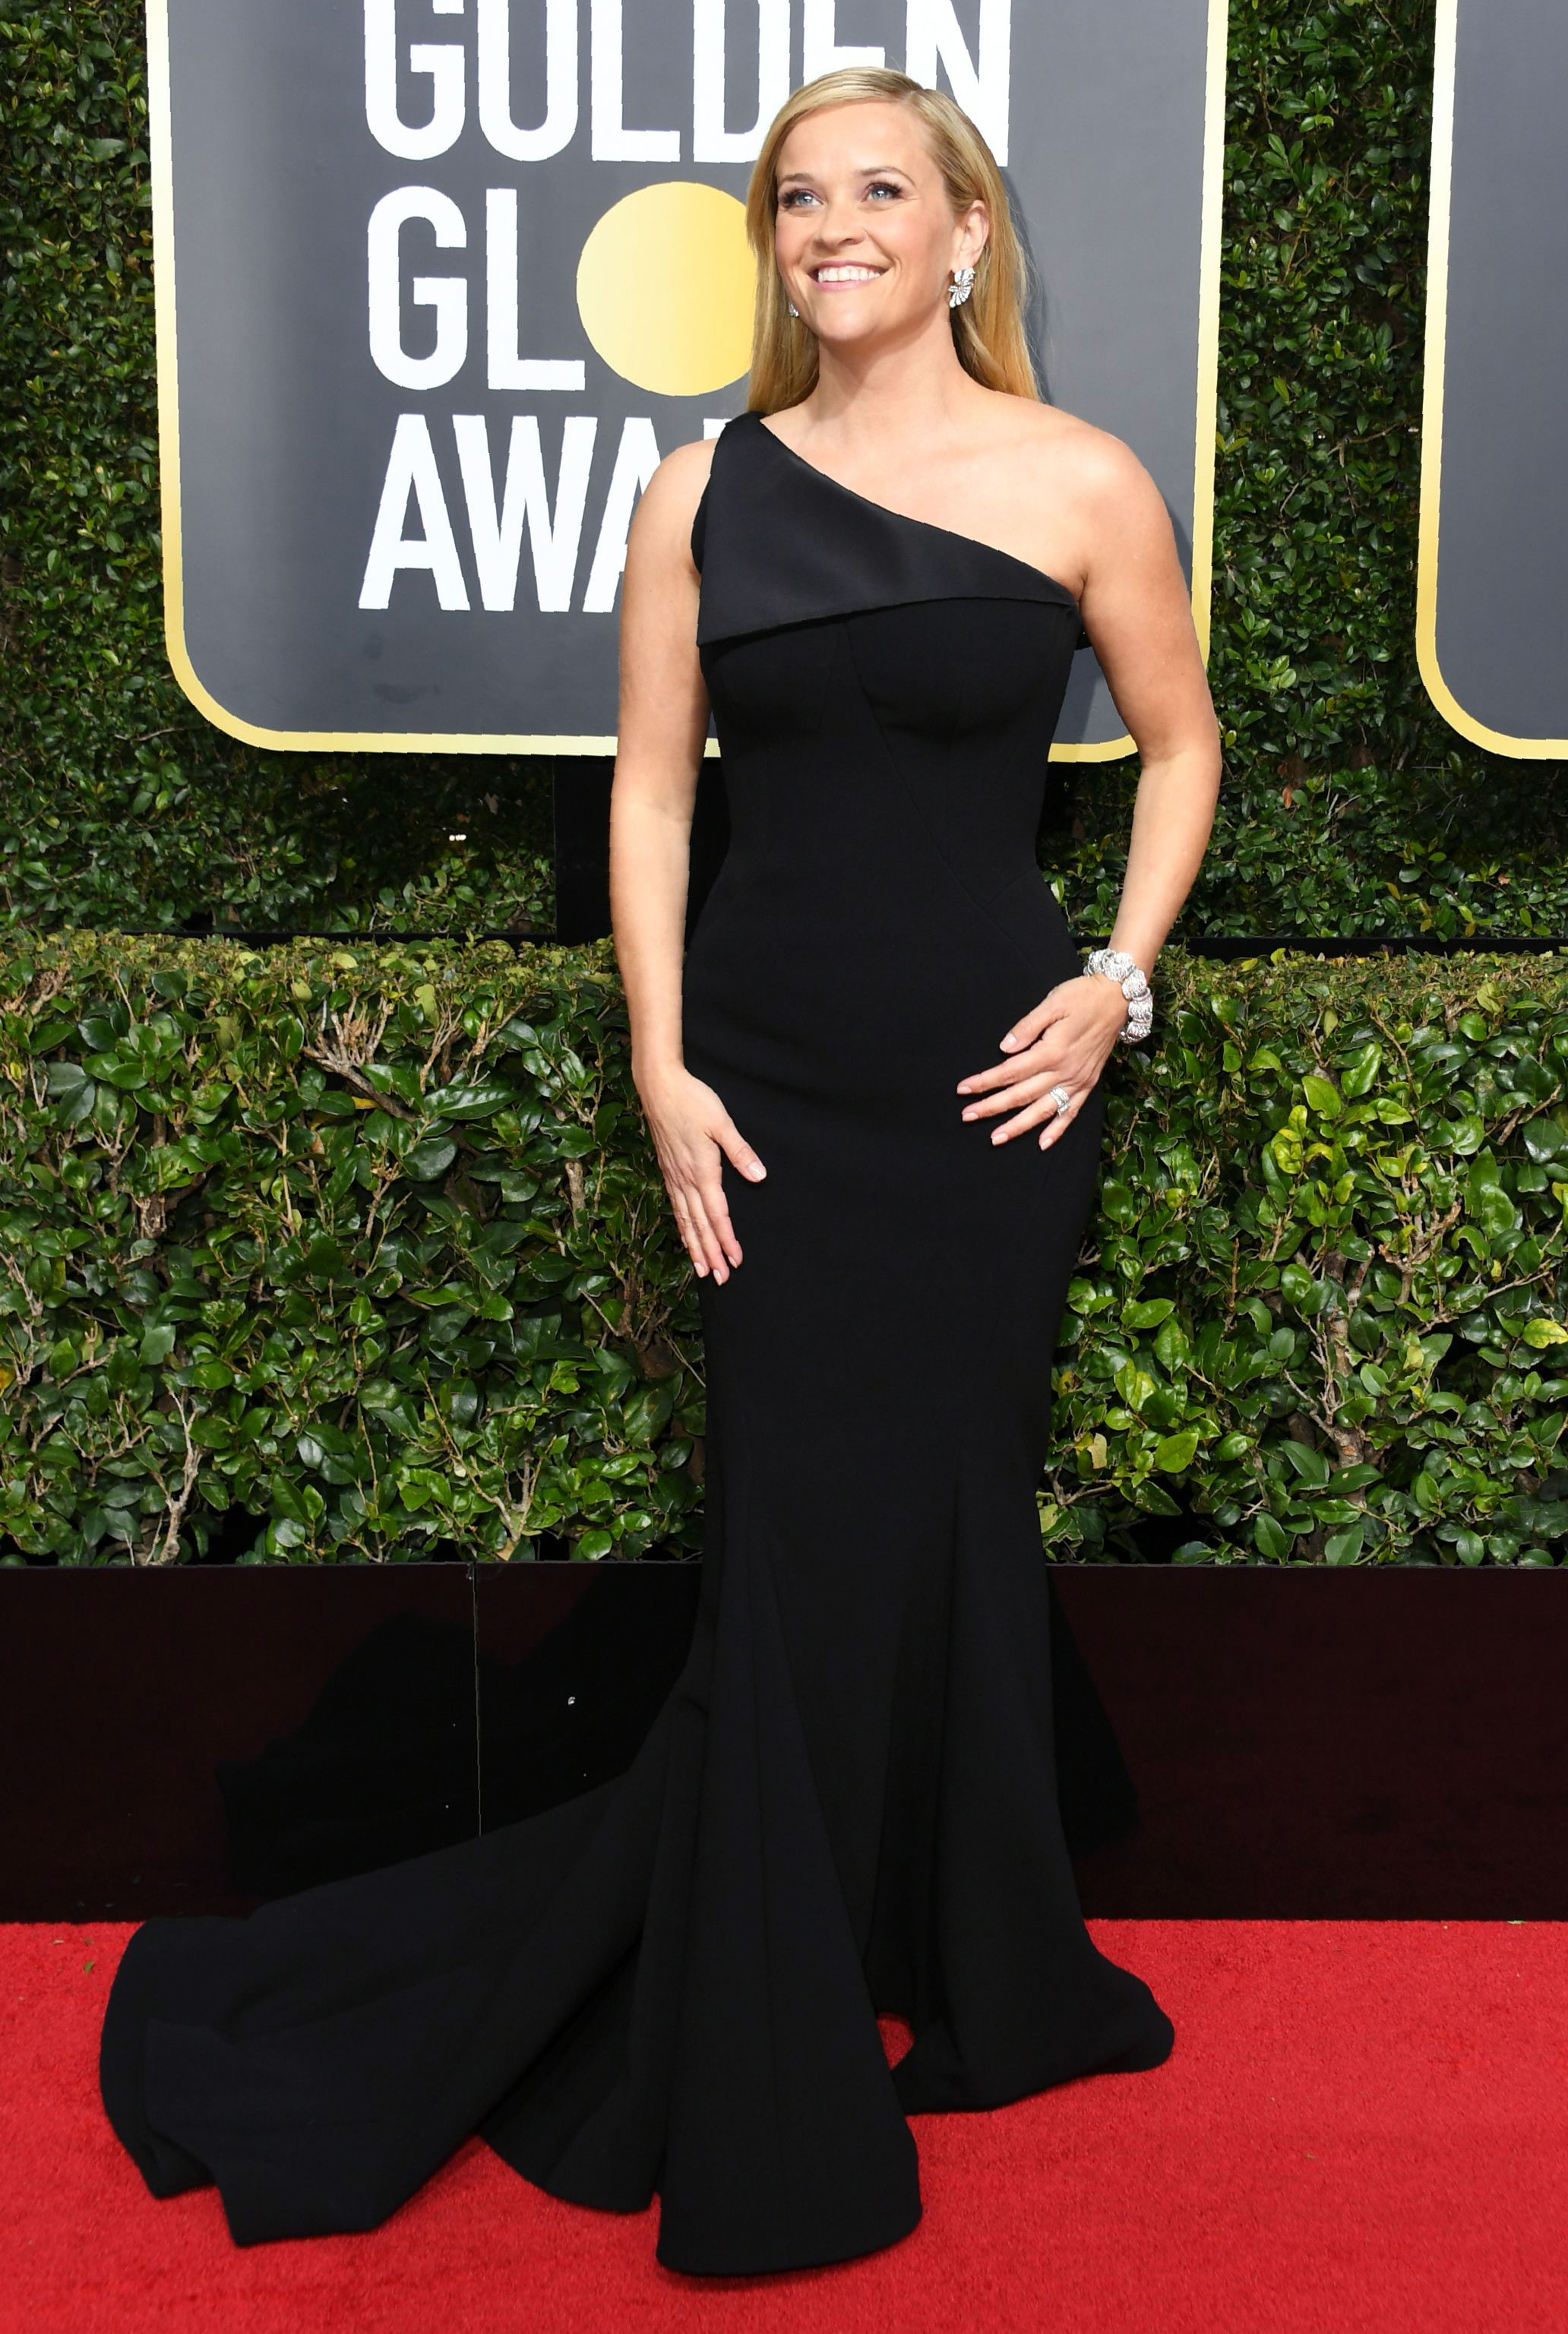 Golden Globes 2018 Red Carpet Fashion: See Stars Dresses, Gowns